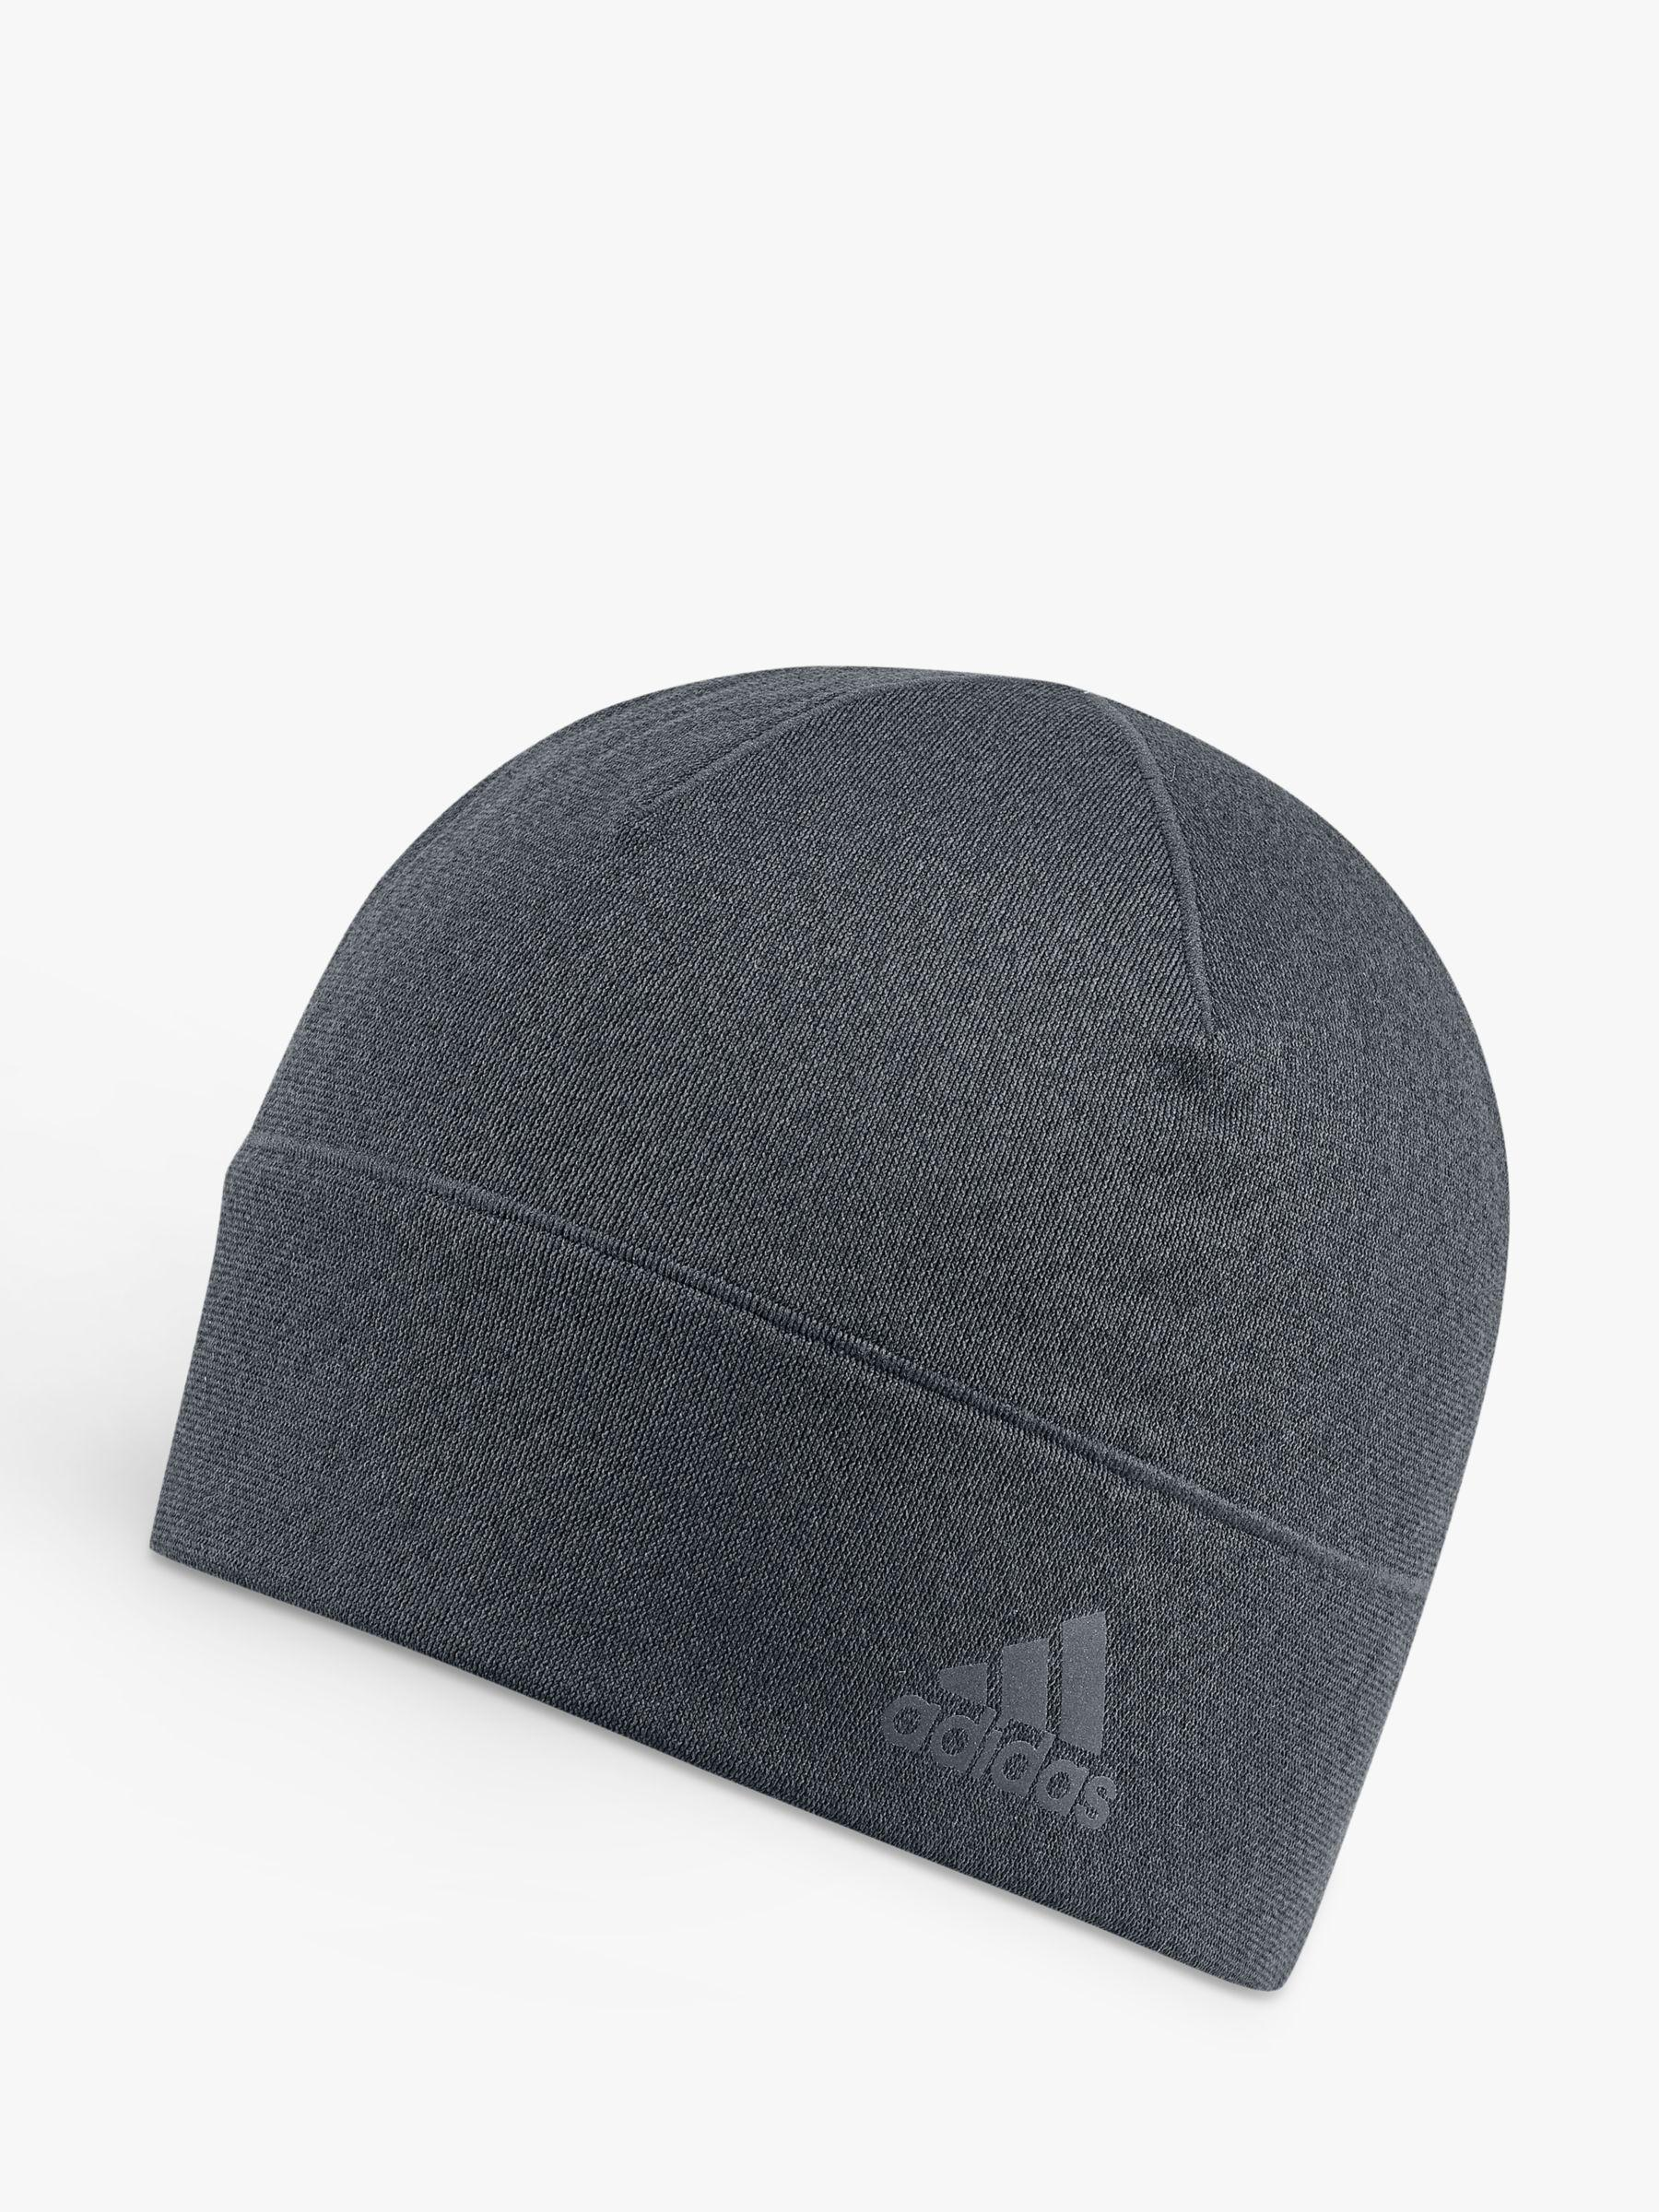 adidas Climaheat Running Beanie Hat in Gray for Men - Lyst dcf1b138891